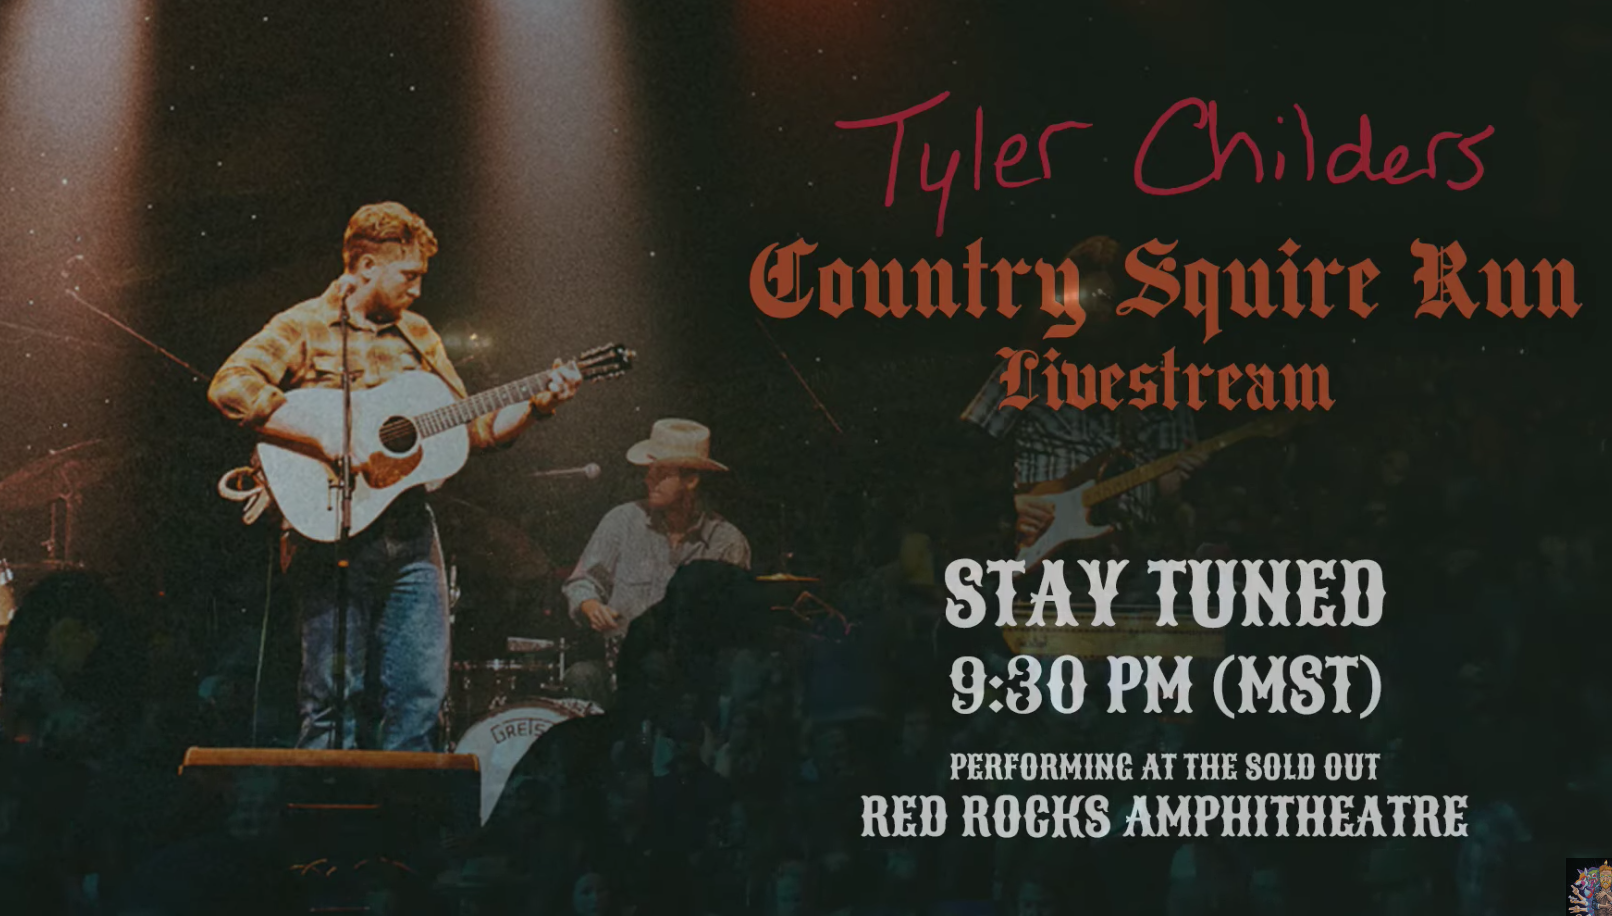 tyler childers live from red rocks